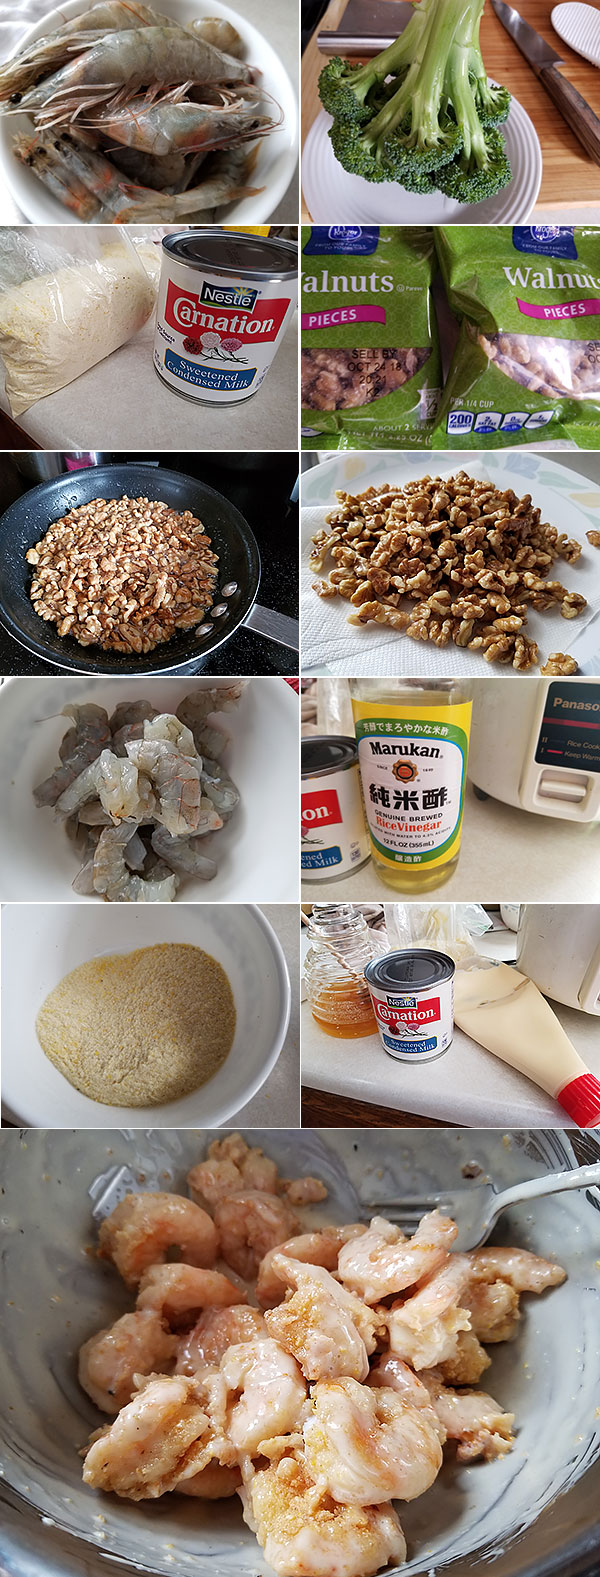 Chinese Walnut Shrimp Ingredients